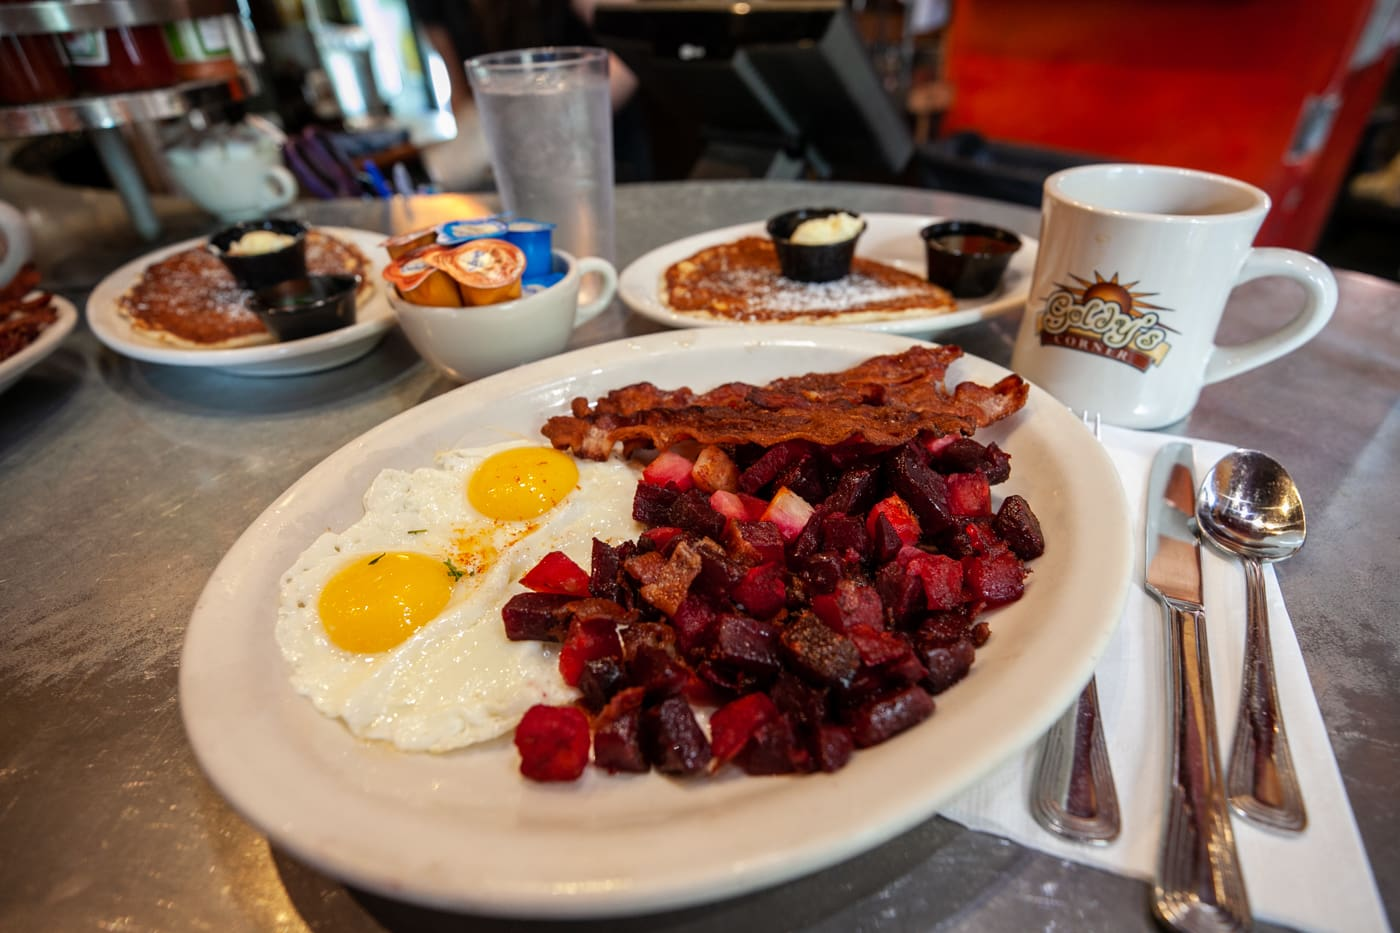 Create-your-own breakfast combo I had at Goldy's Breakfast Bistro in Boise, Idaho: two eggs (sunny side up), bacon, red flannel hash (potatoes, beets, and... more bacon), a blueberry pancake, and, of course, some coffee to fuel my morning. It was so good.⁠